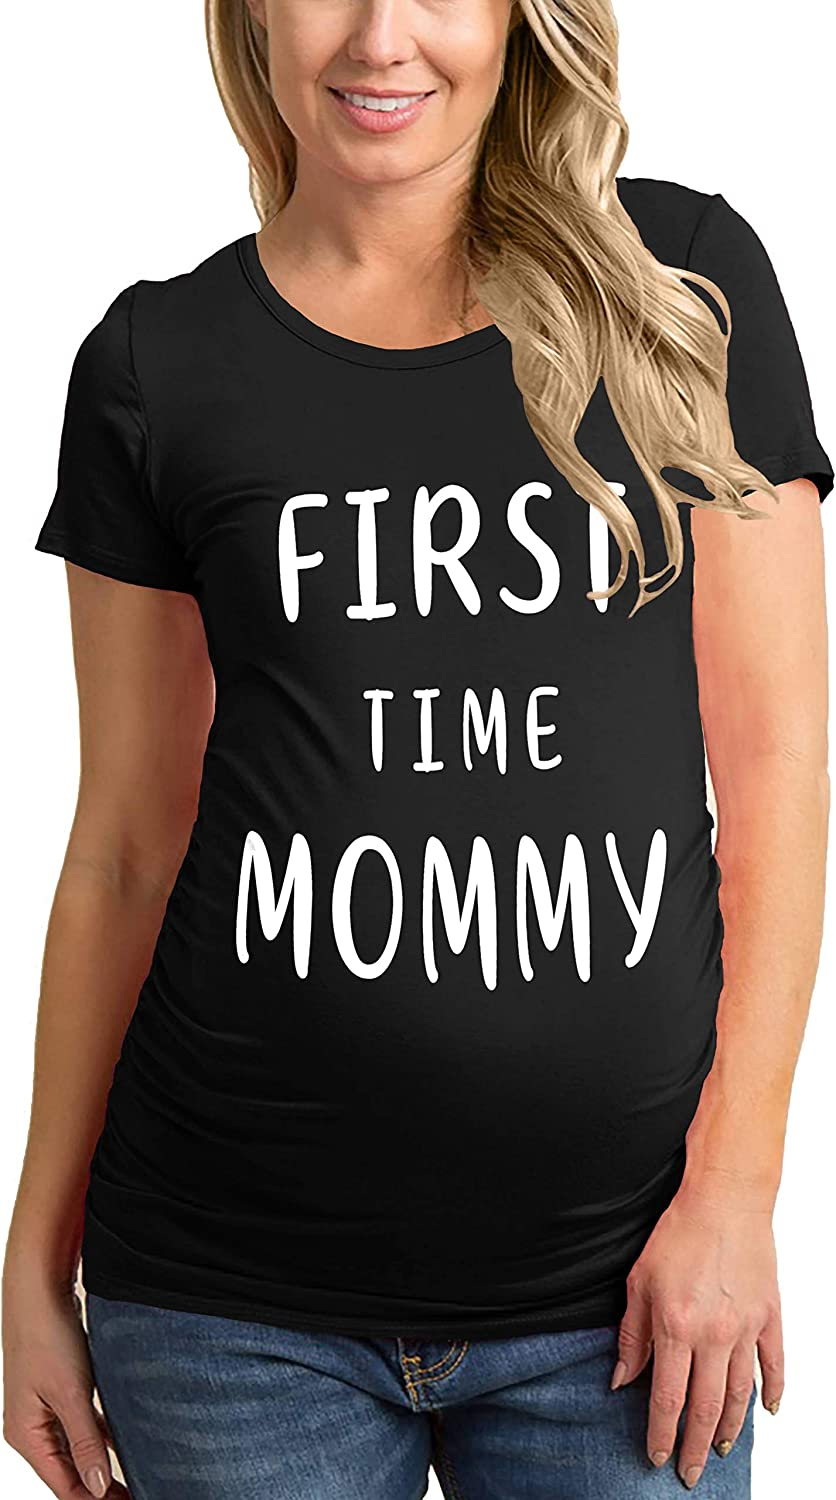 Maternity T Shirts for Women - Womens Tunic Side Ruched Pregnancy Shirt Ultra Soft Casual Mom Tops